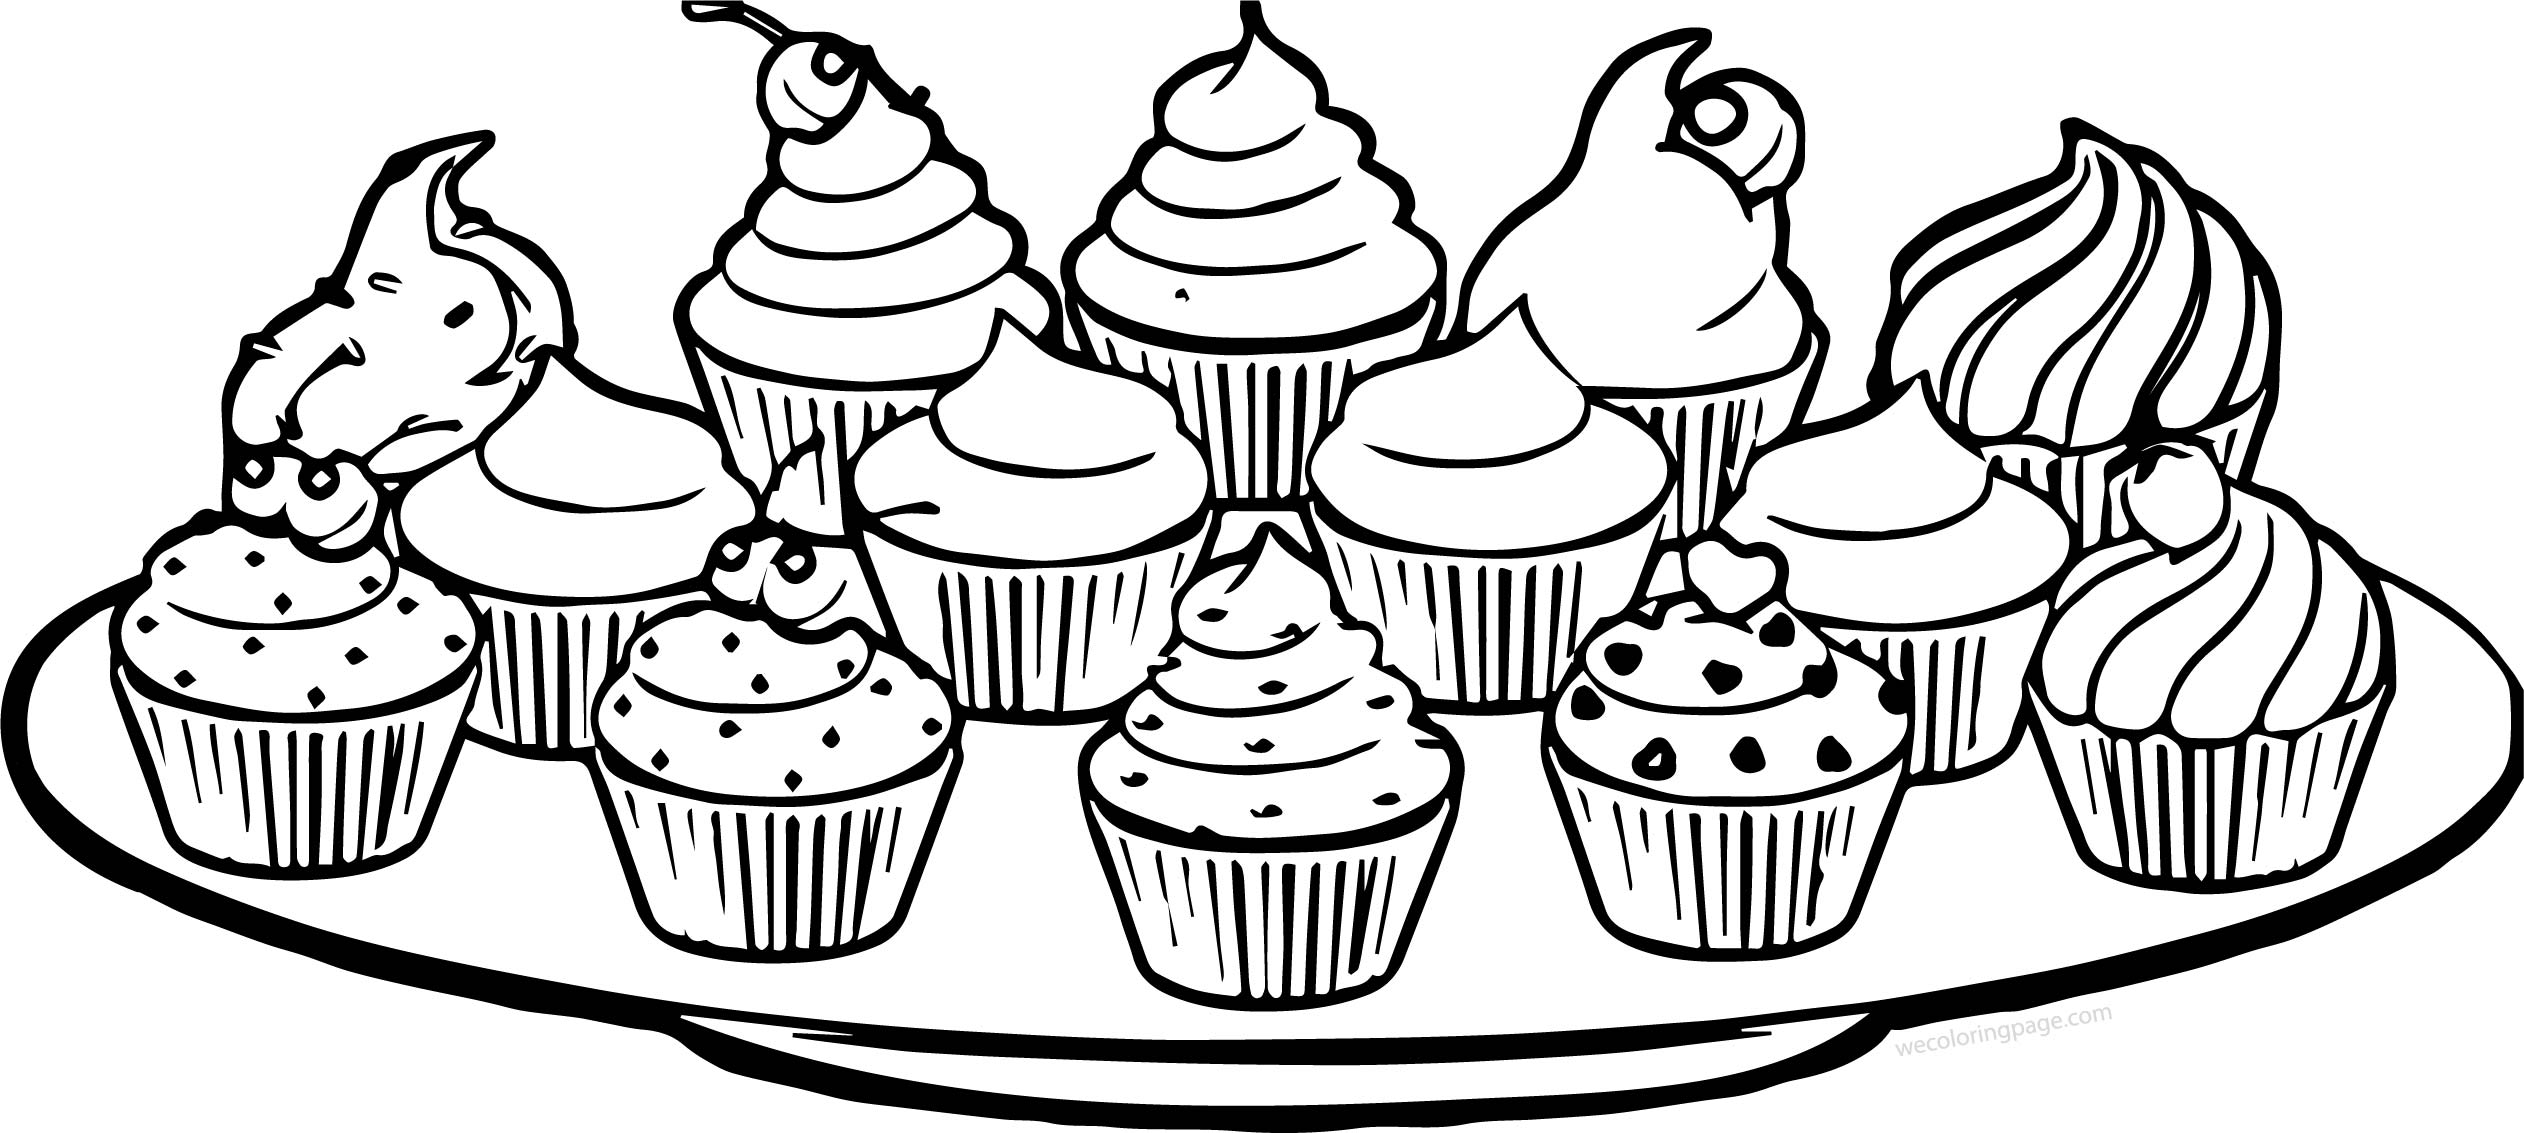 Plate Of Cupcakes Coloring Page